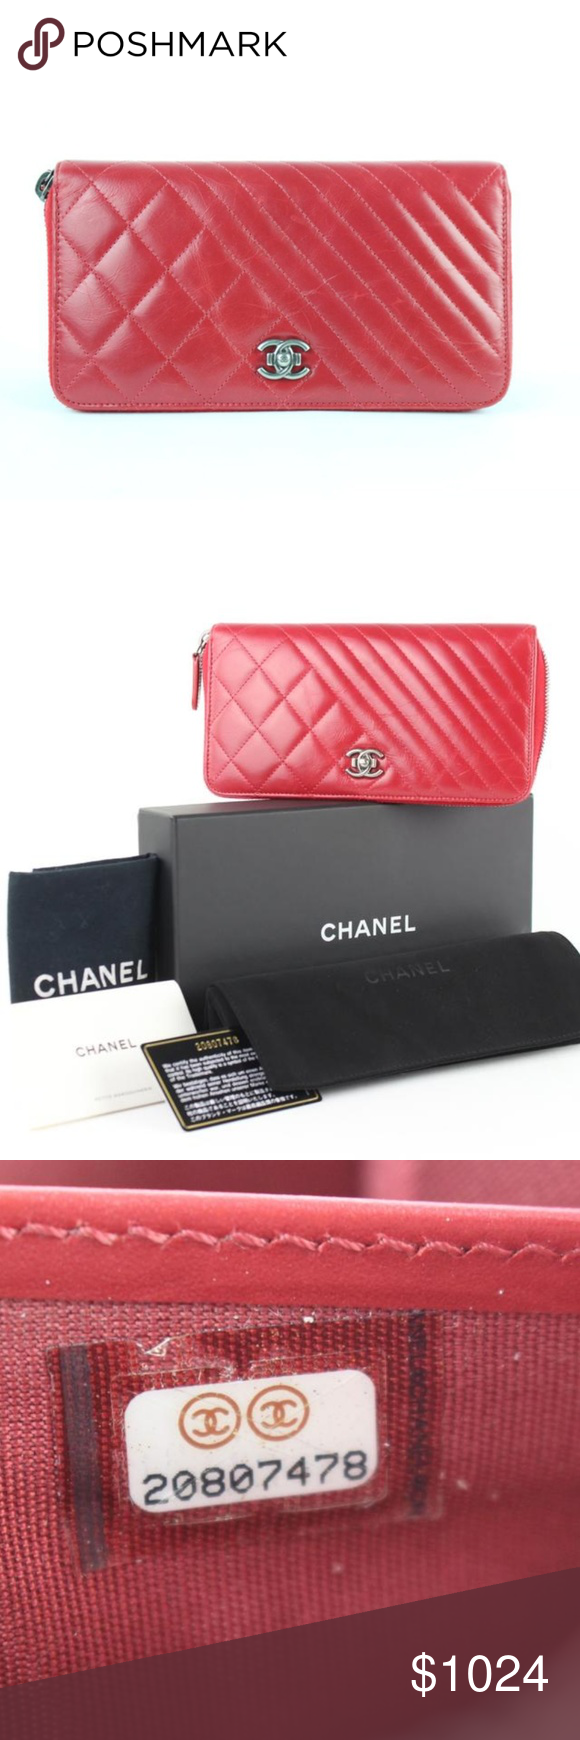 ef616b35c28b Chanel Boy Zip Around Gusset Wallet 9CE0102 Date Code/Serial Number:  20807478 Made In: Italy Measurements: Length: 7.5